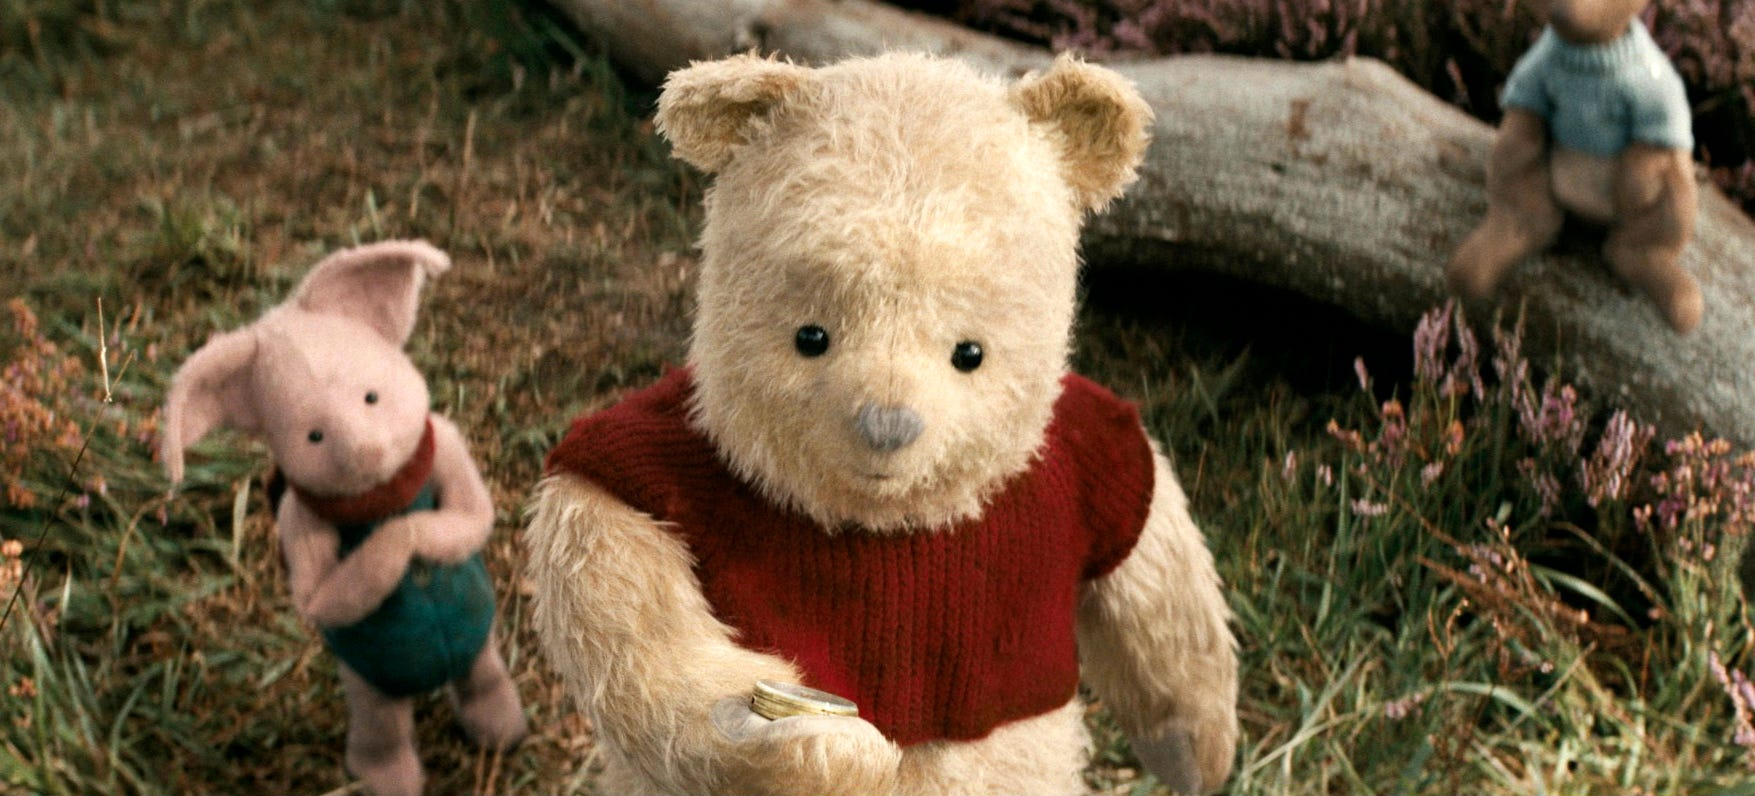 winnie the pooh is the living in the moment hero we need right now rh usatoday com Christopher Robin 2018 Poster Christopher Robin 2018 Adult Christopher Robin